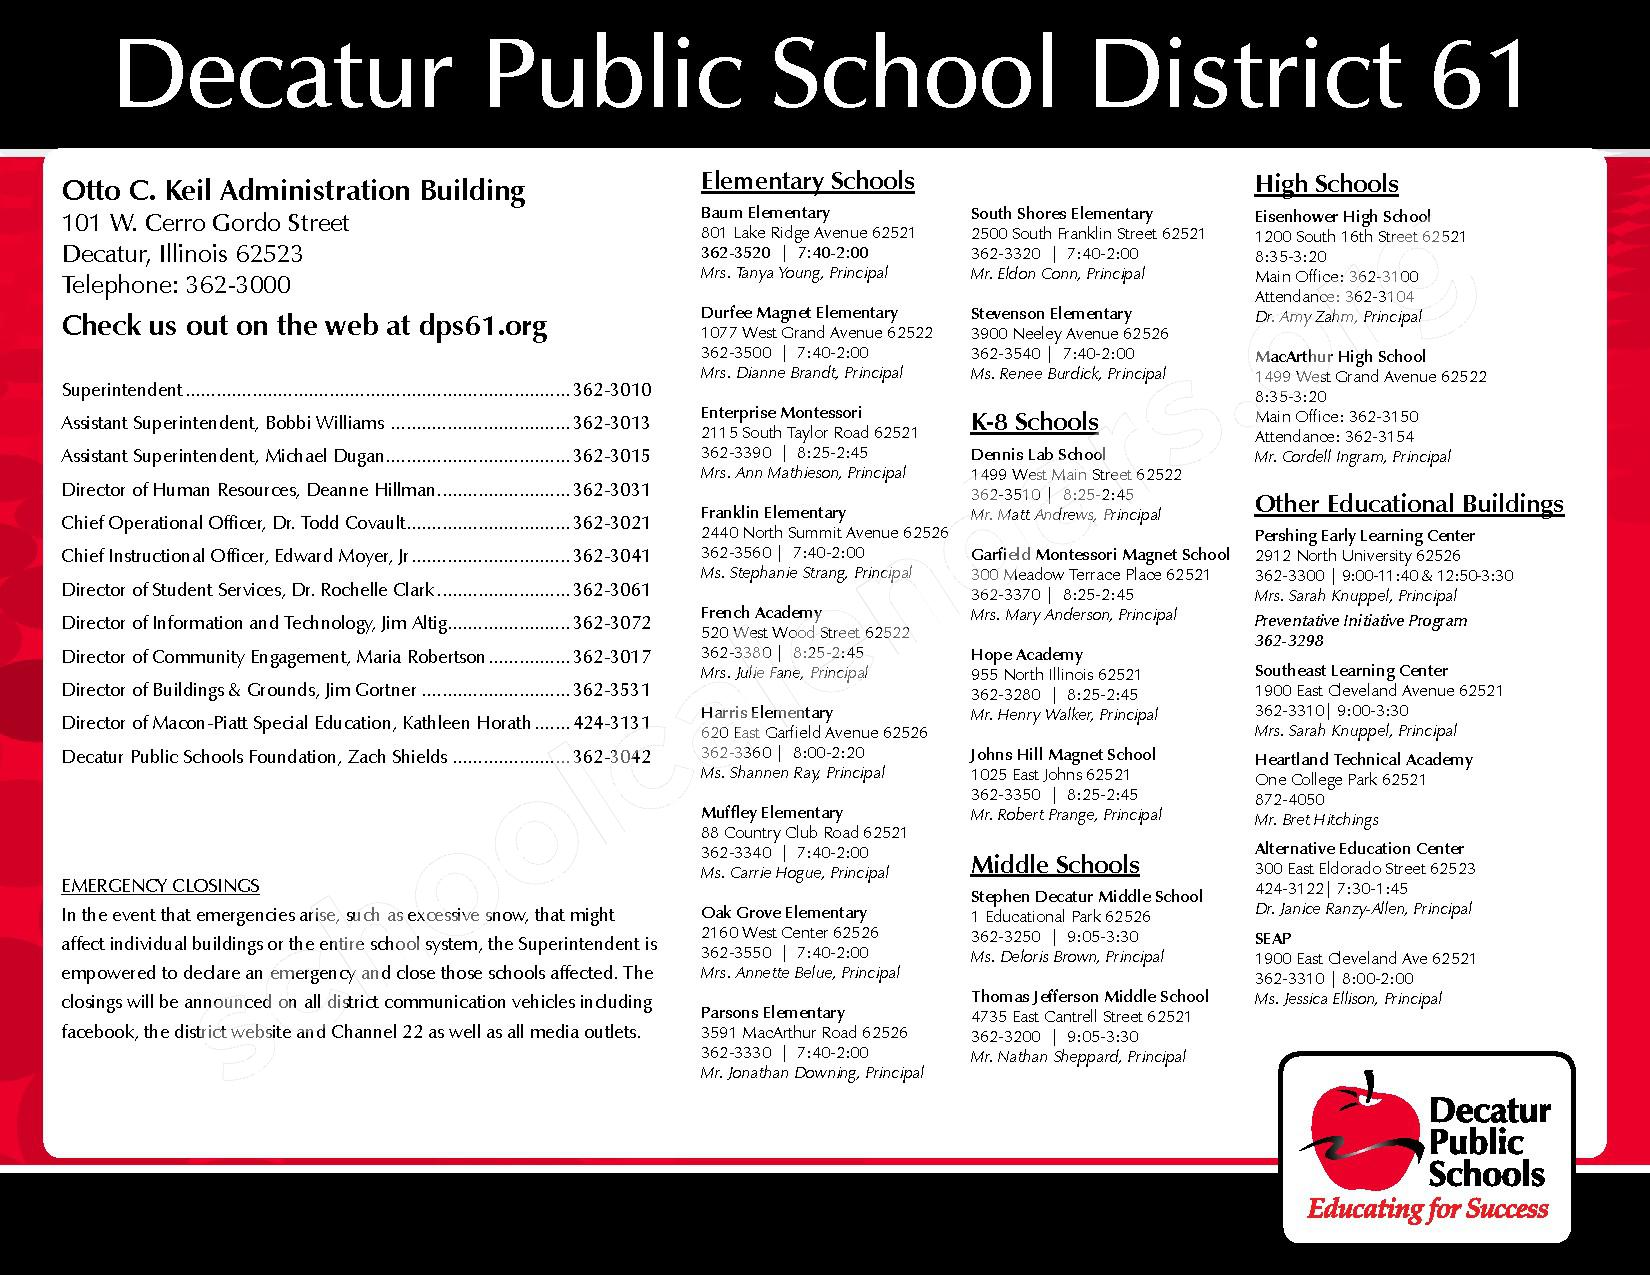 2016 - 2017 District Calendar – Michael E Baum Elementary School – page 32